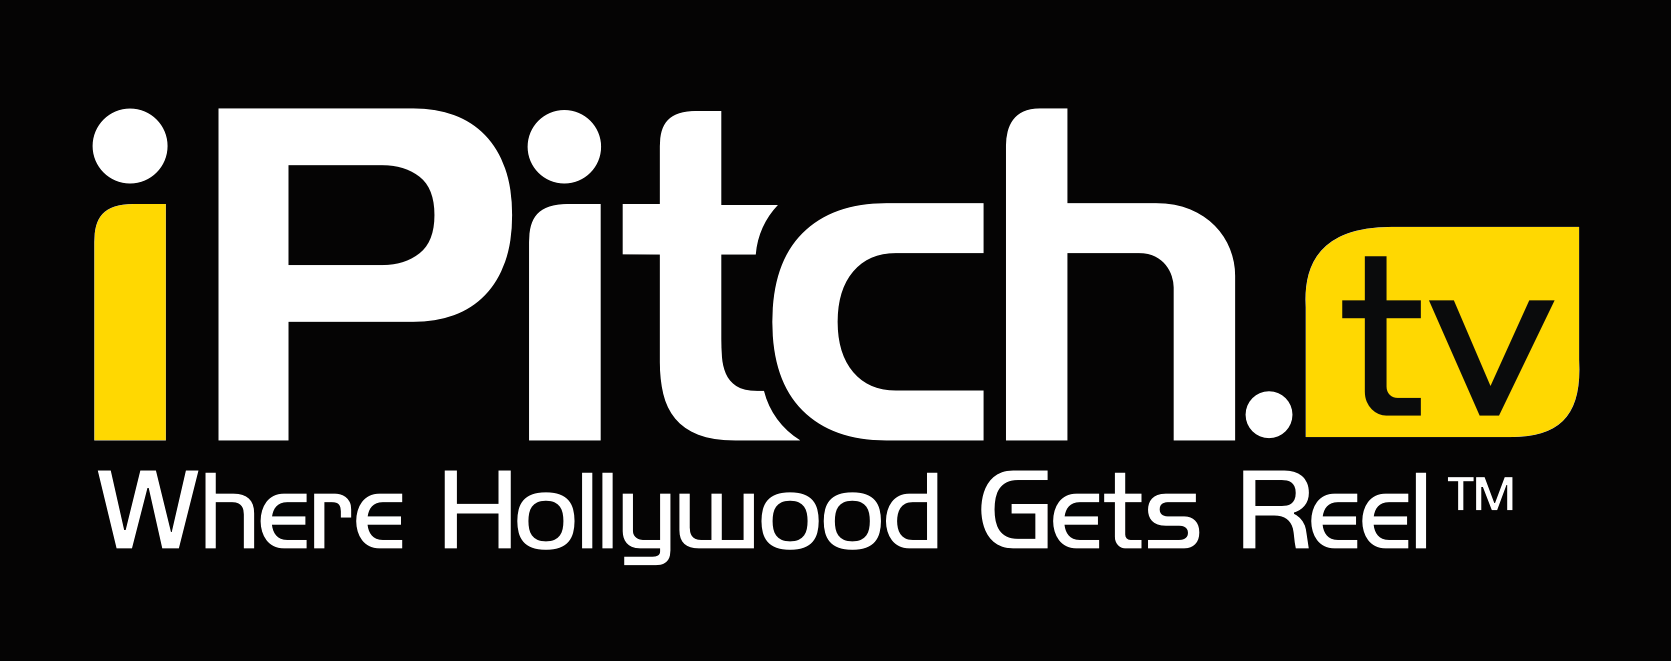 """Looking for a way to pitch your idea for a television show or movie?  iPITCH.TV offers a next generation platform for creators of original pitches for TV, Film & Digital Media to connect directly with Hollywood Producers and Studio Executives and gives creators industry pro advice on how to pitch a television show or feature film. Pitch your idea for a Movie, Screenplay, Television Show, Short Film, New Media Project and more."